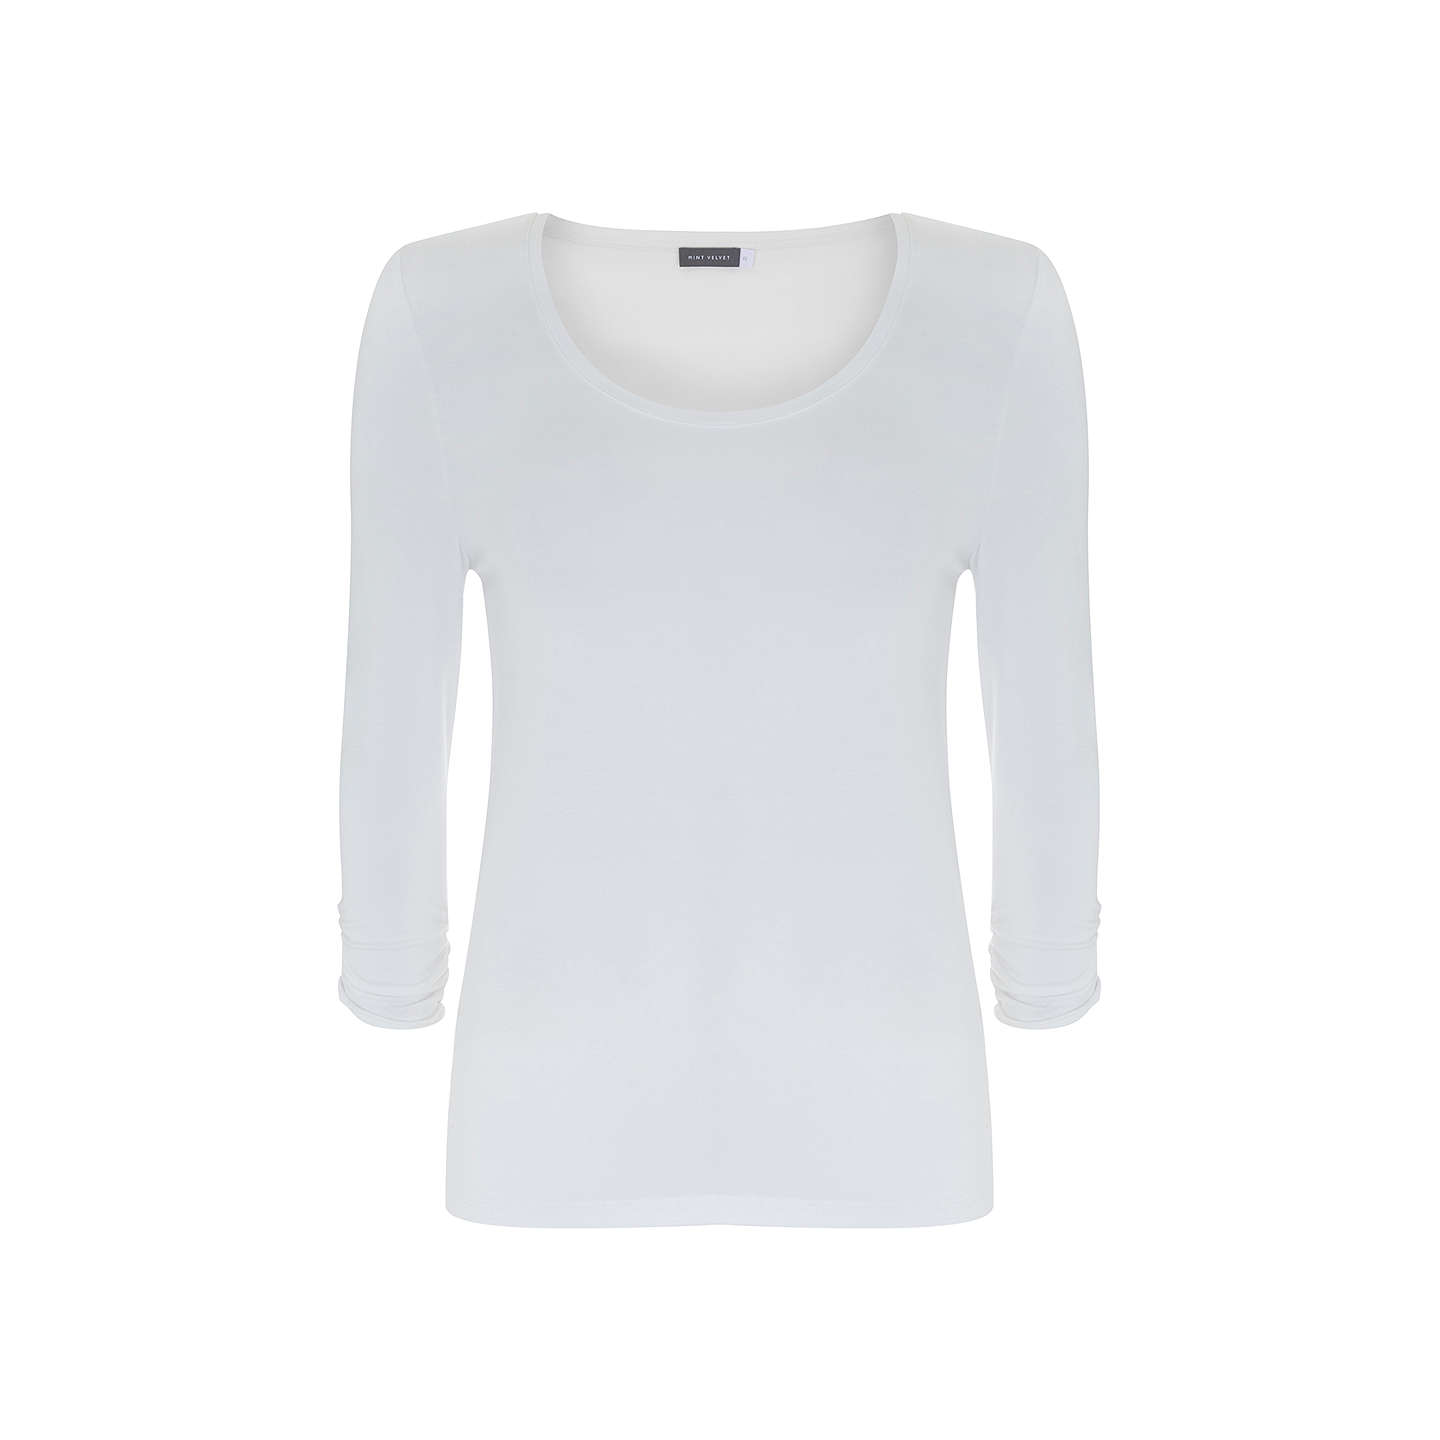 BuyMint Velvet Scoop Neck T-Shirt, Ivory, XL Online at johnlewis.com